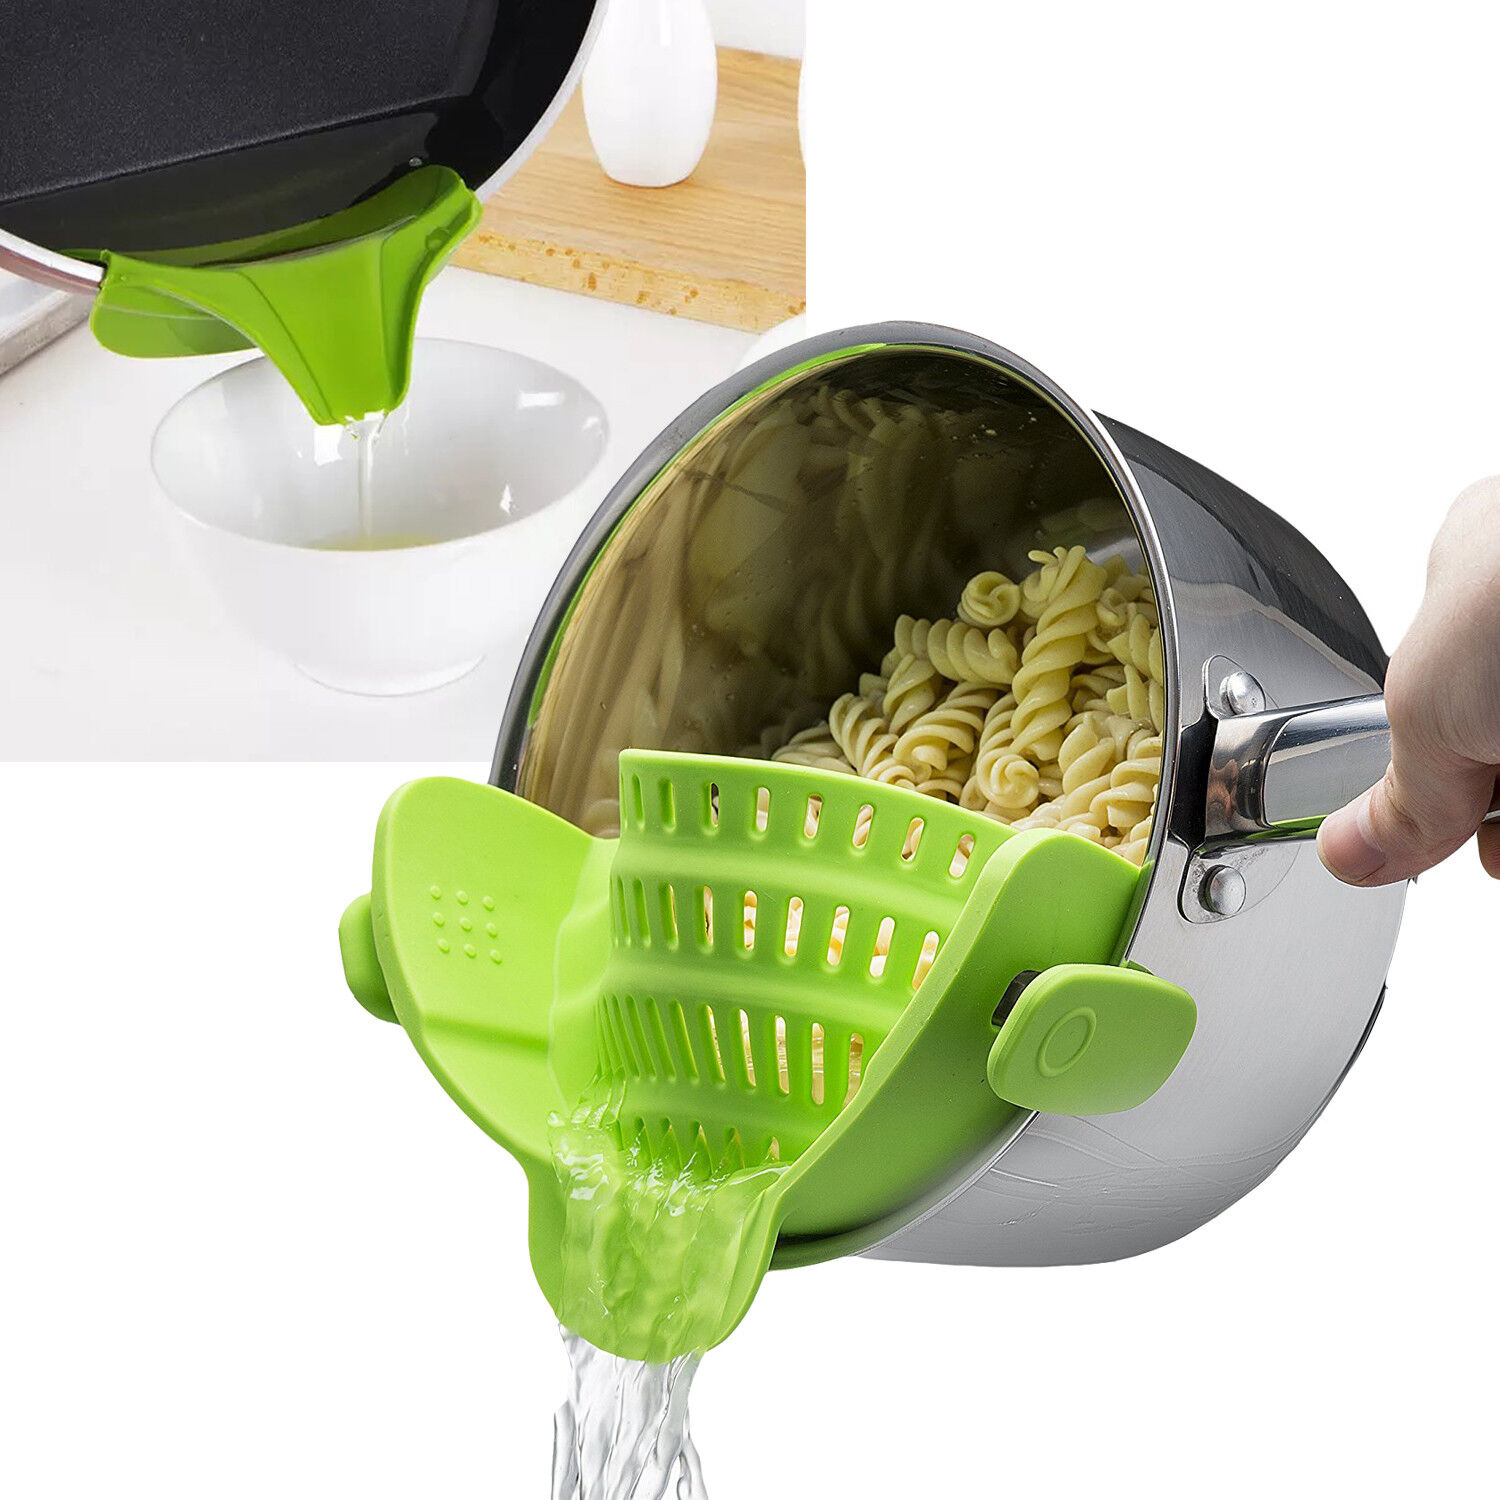 Pasta Strainer Silicone Filter Clip-on Colander w/ Soup Funnel Universal Size Colanders, Strainers & Sifters